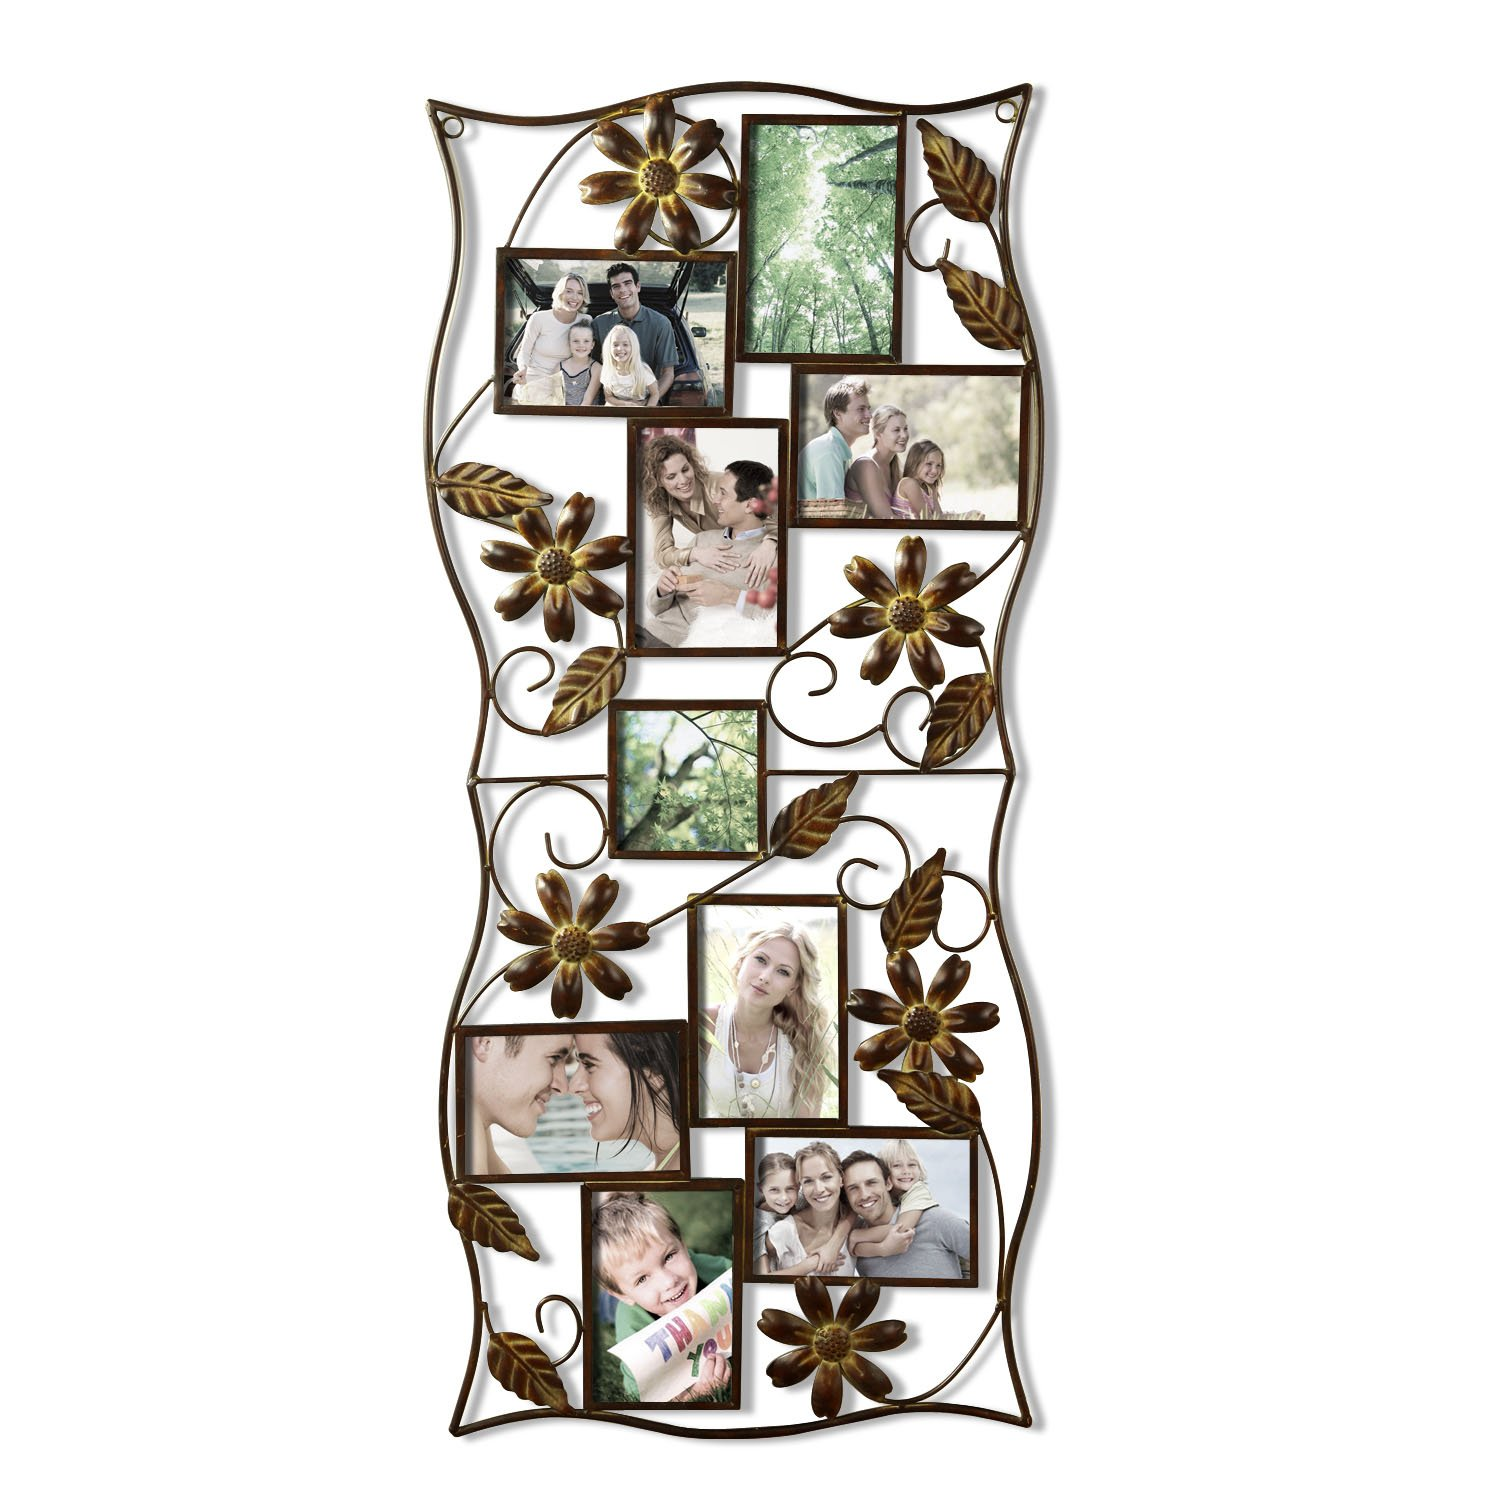 Adeco 9 opening 4x6 decorative iron wall hanging collage for Unique wall frames